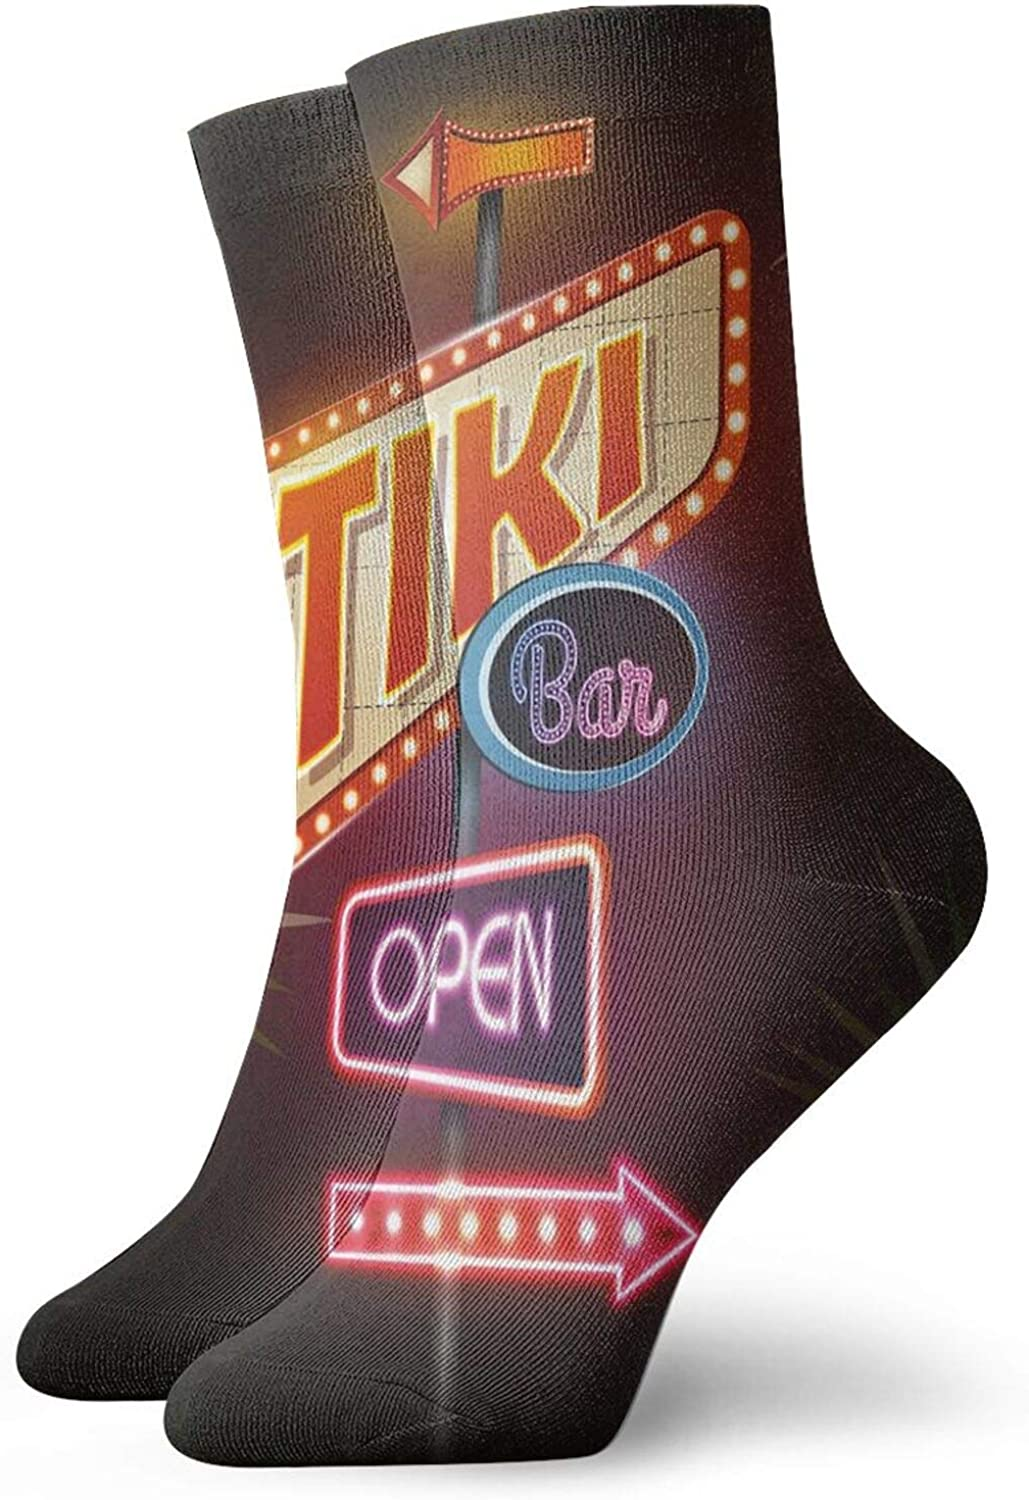 Compression High Socks-Old Fashioned Neon Signs Illustration Open Bar Palm Tree Branches Roadside Best for Running,Athletic,Hiking,Travel,Flight